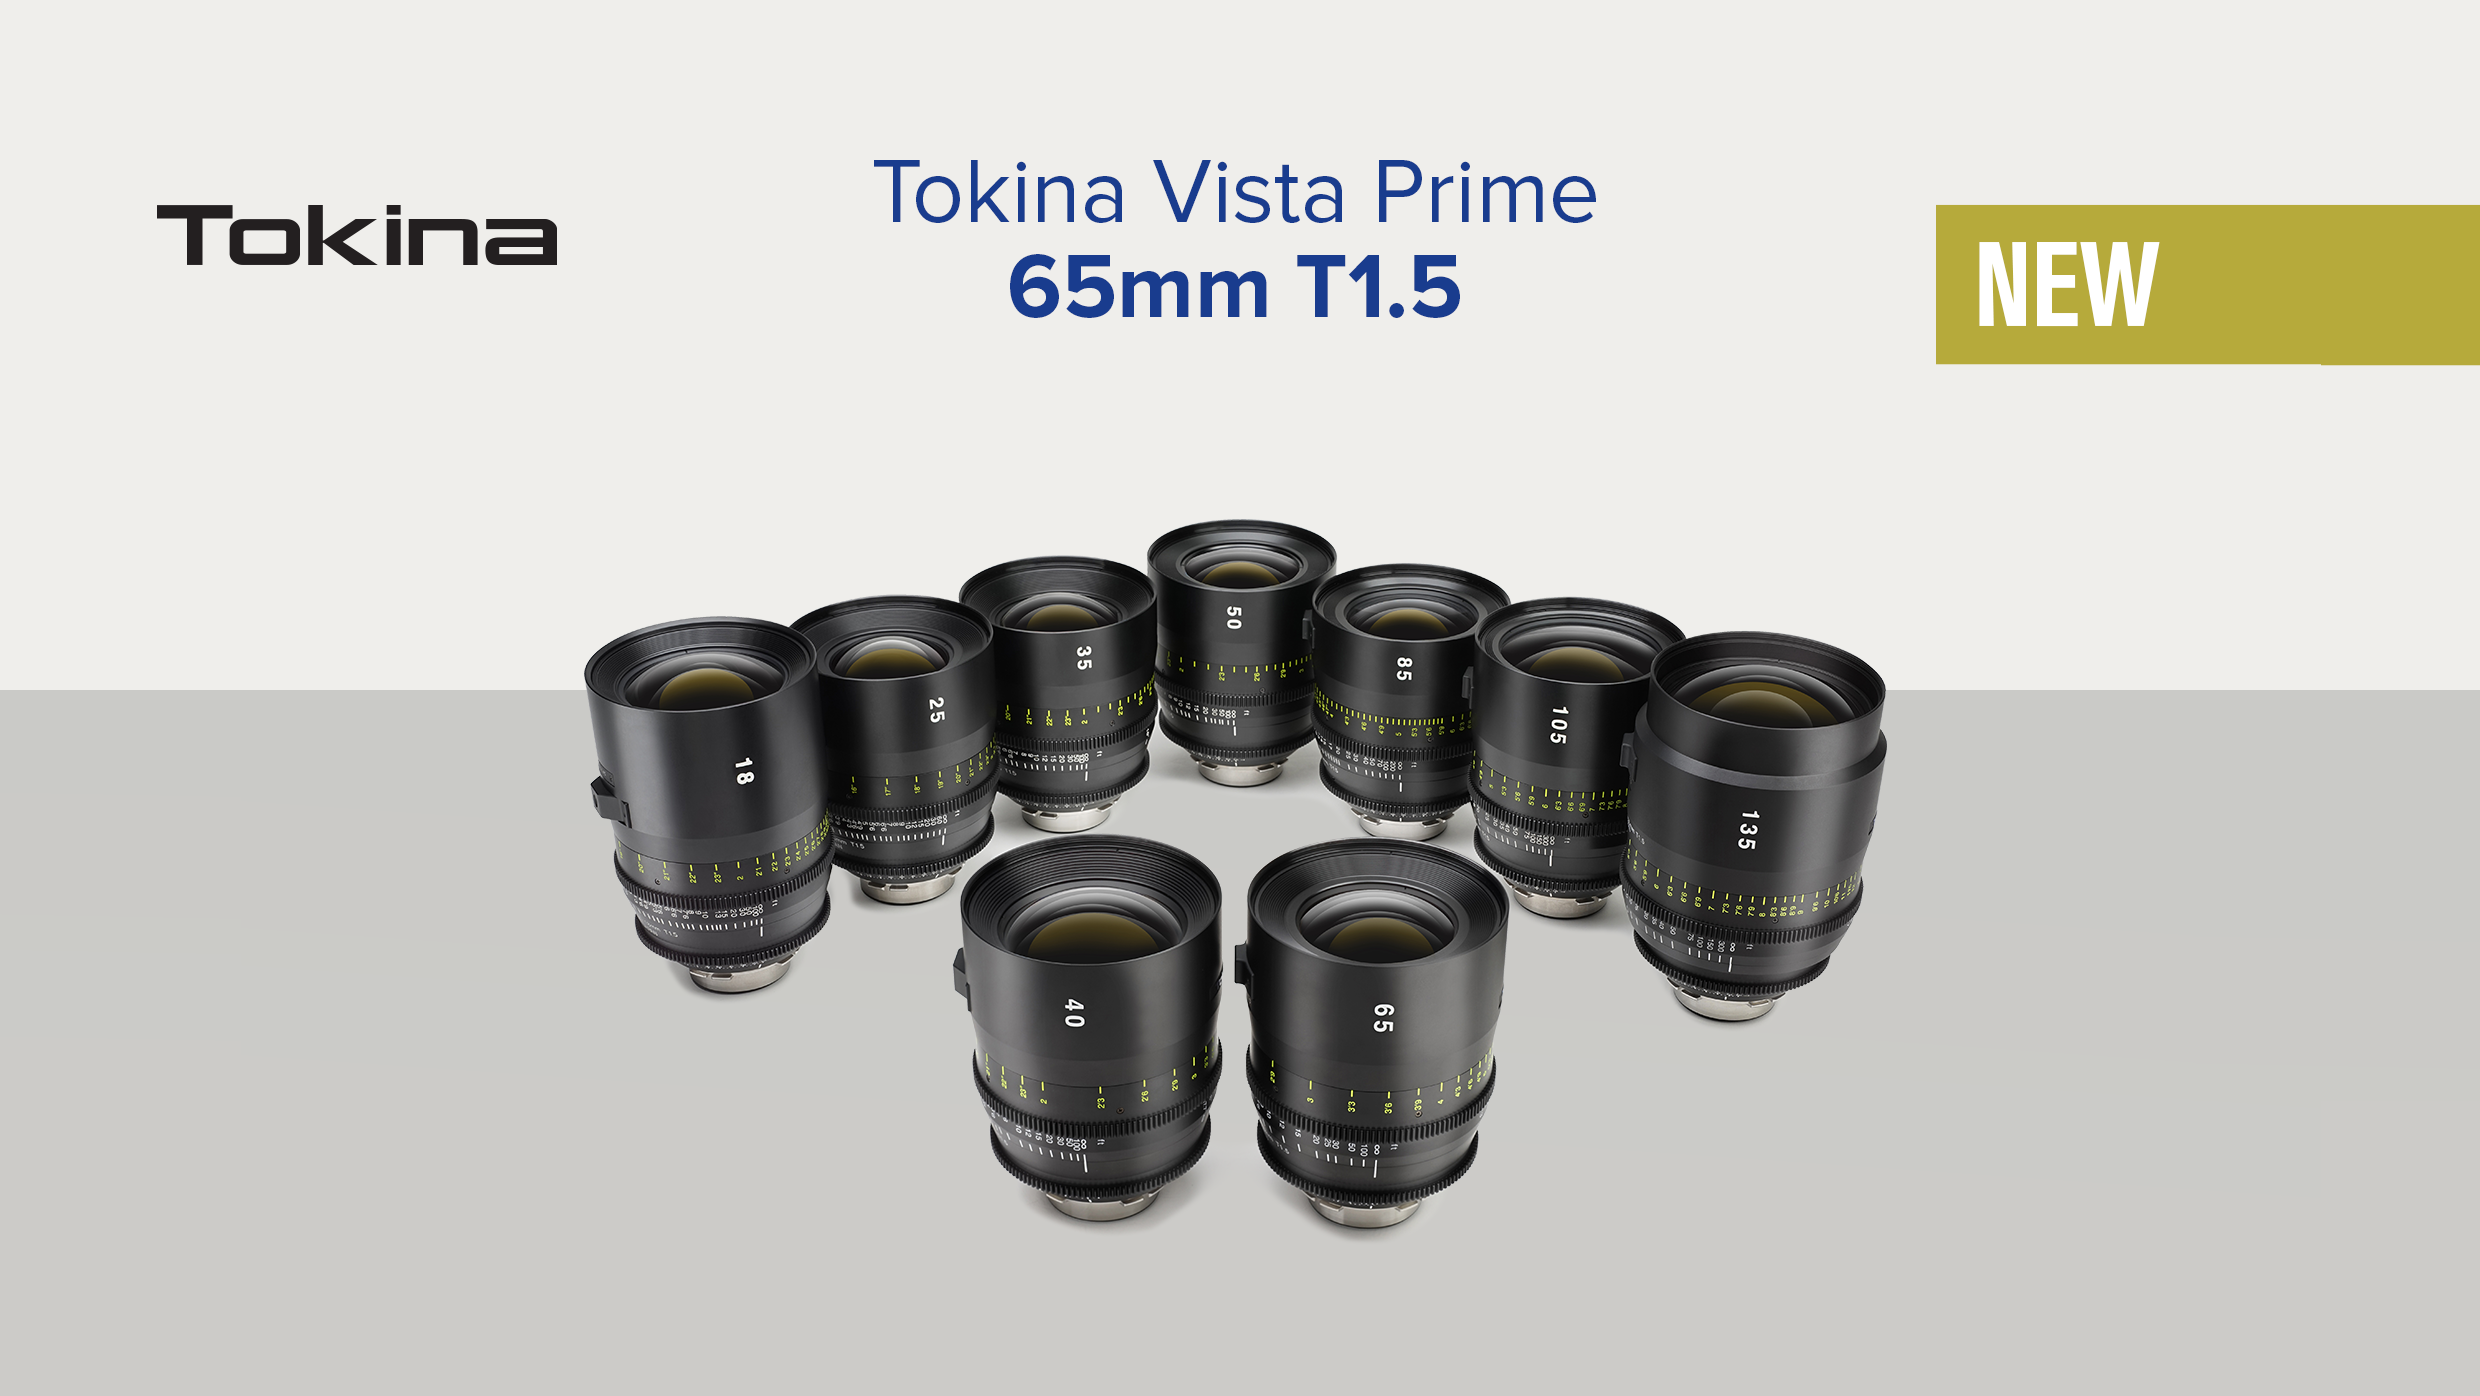 Introducing Tokina Vista 65mm T1.5!